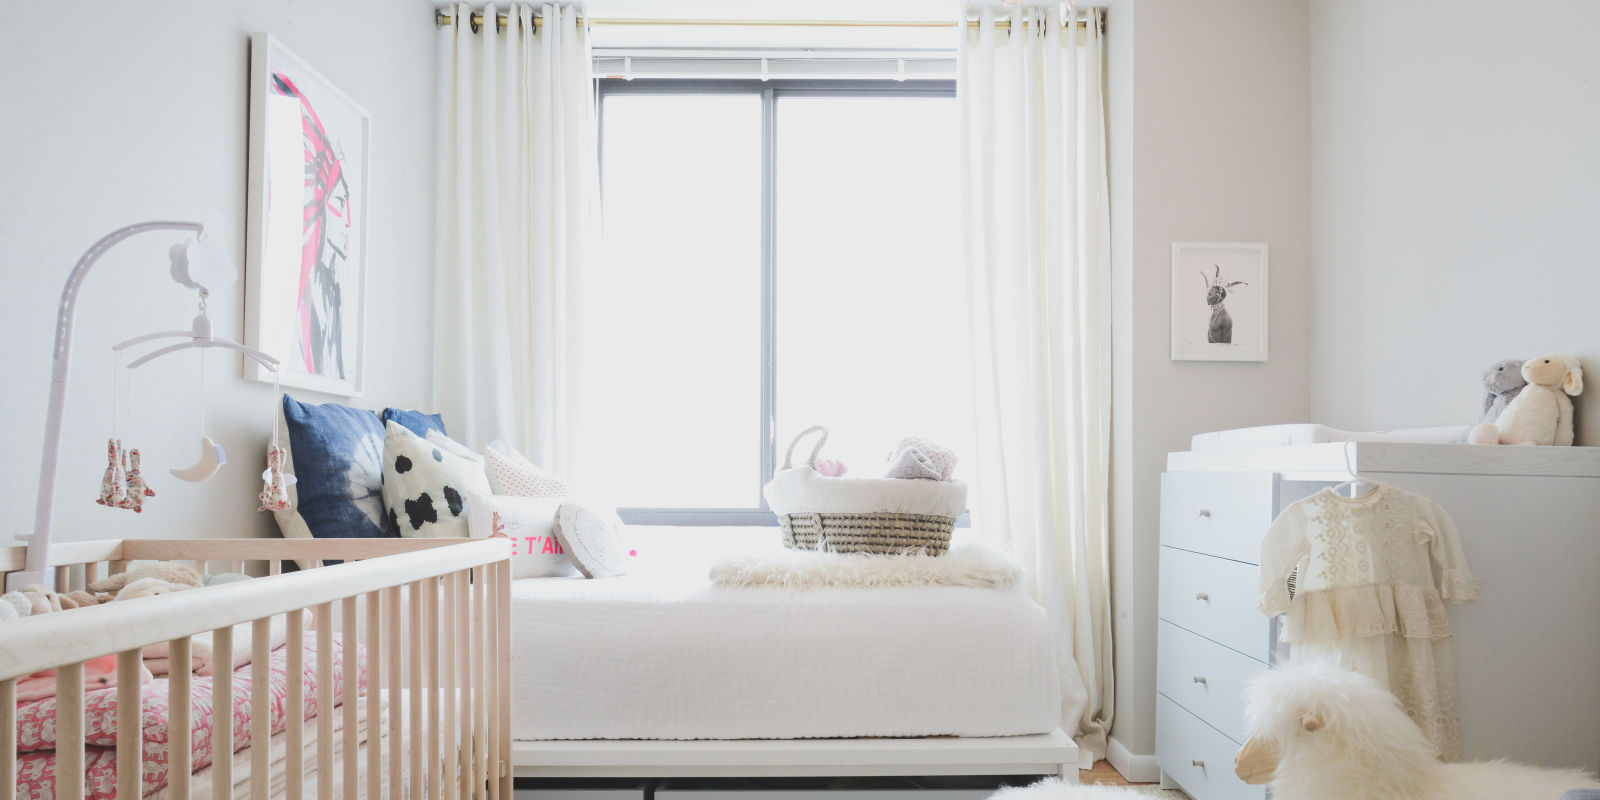 8 best baby room ideas nursery decorating furniture decor for Elle decor nursery